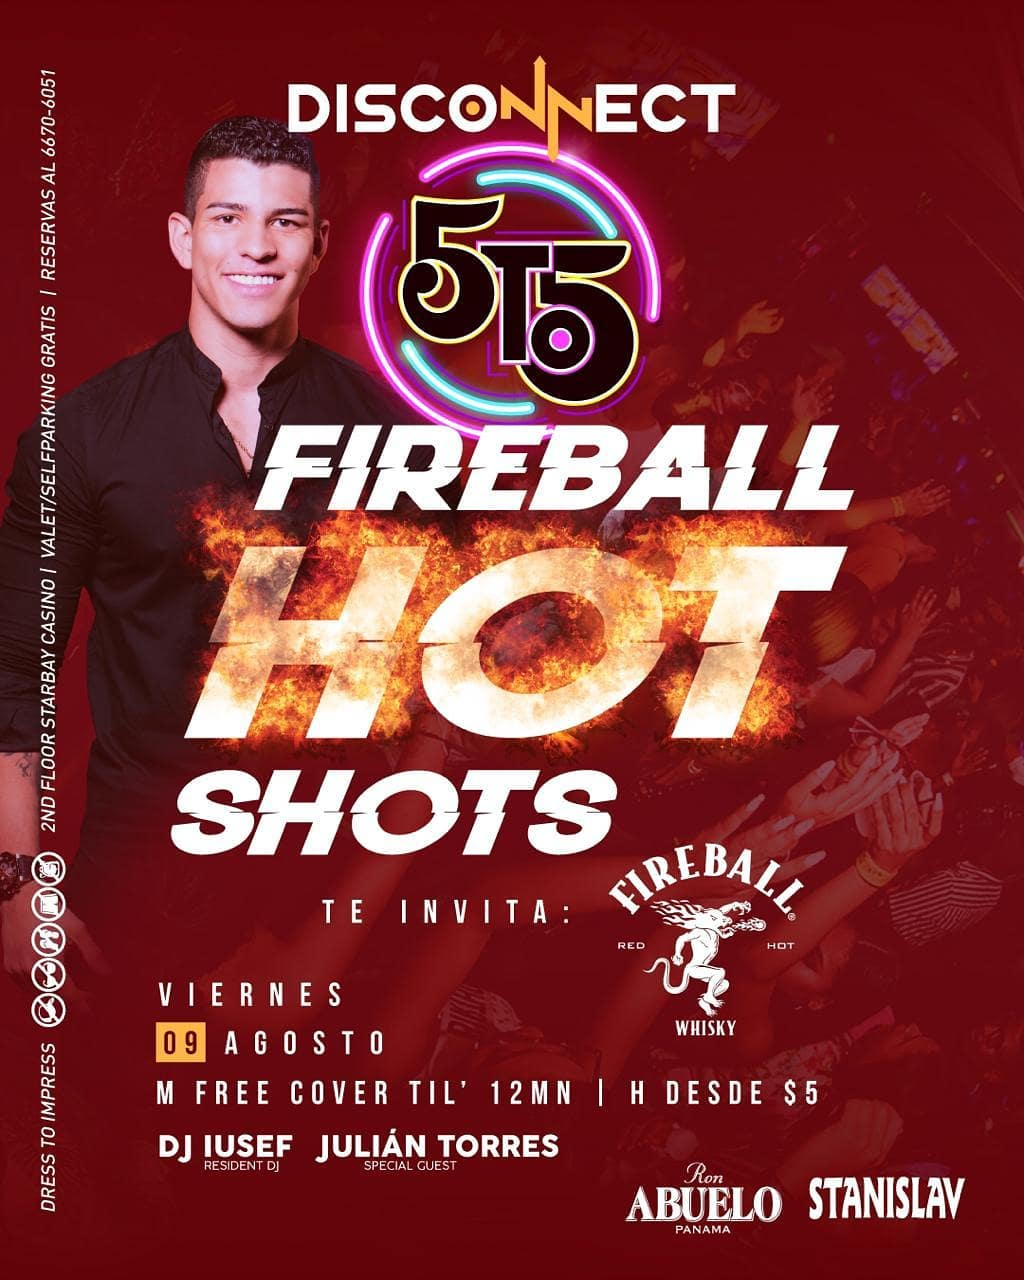 Photo of La disco 5to5 Panamá presenta este viernes 09 de agosto un show 'Fireball Hot Shots'